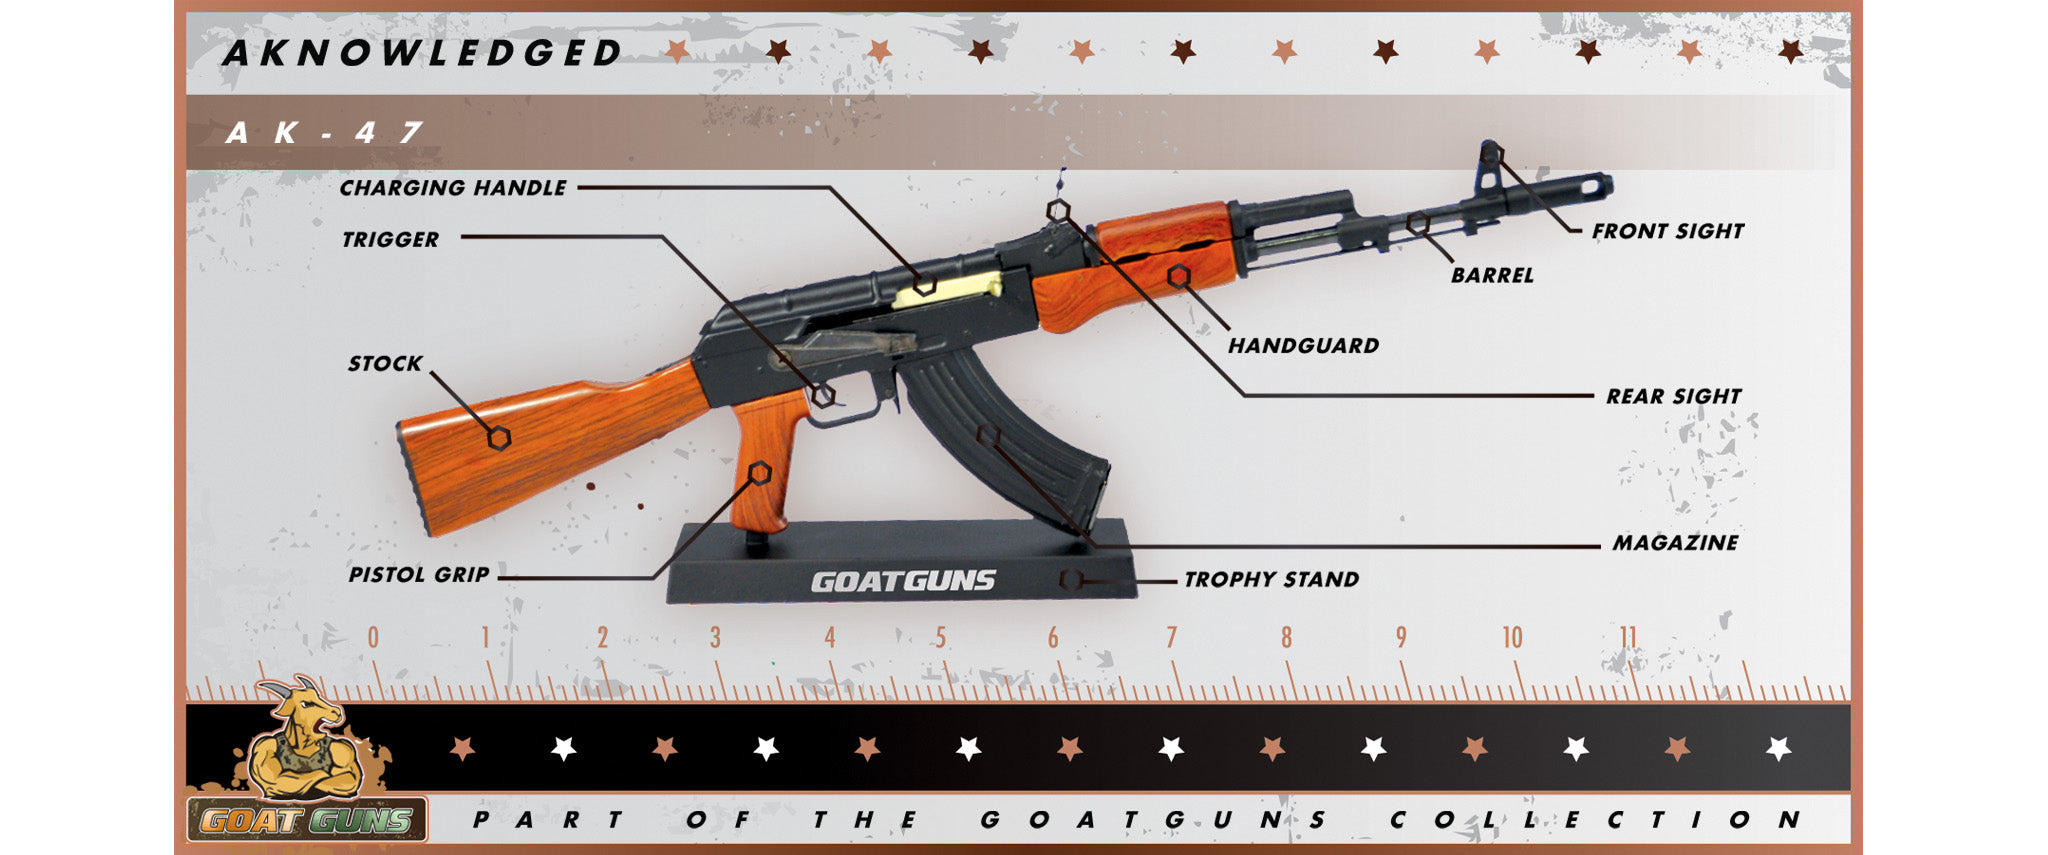 AK47 goatguns rifle facts